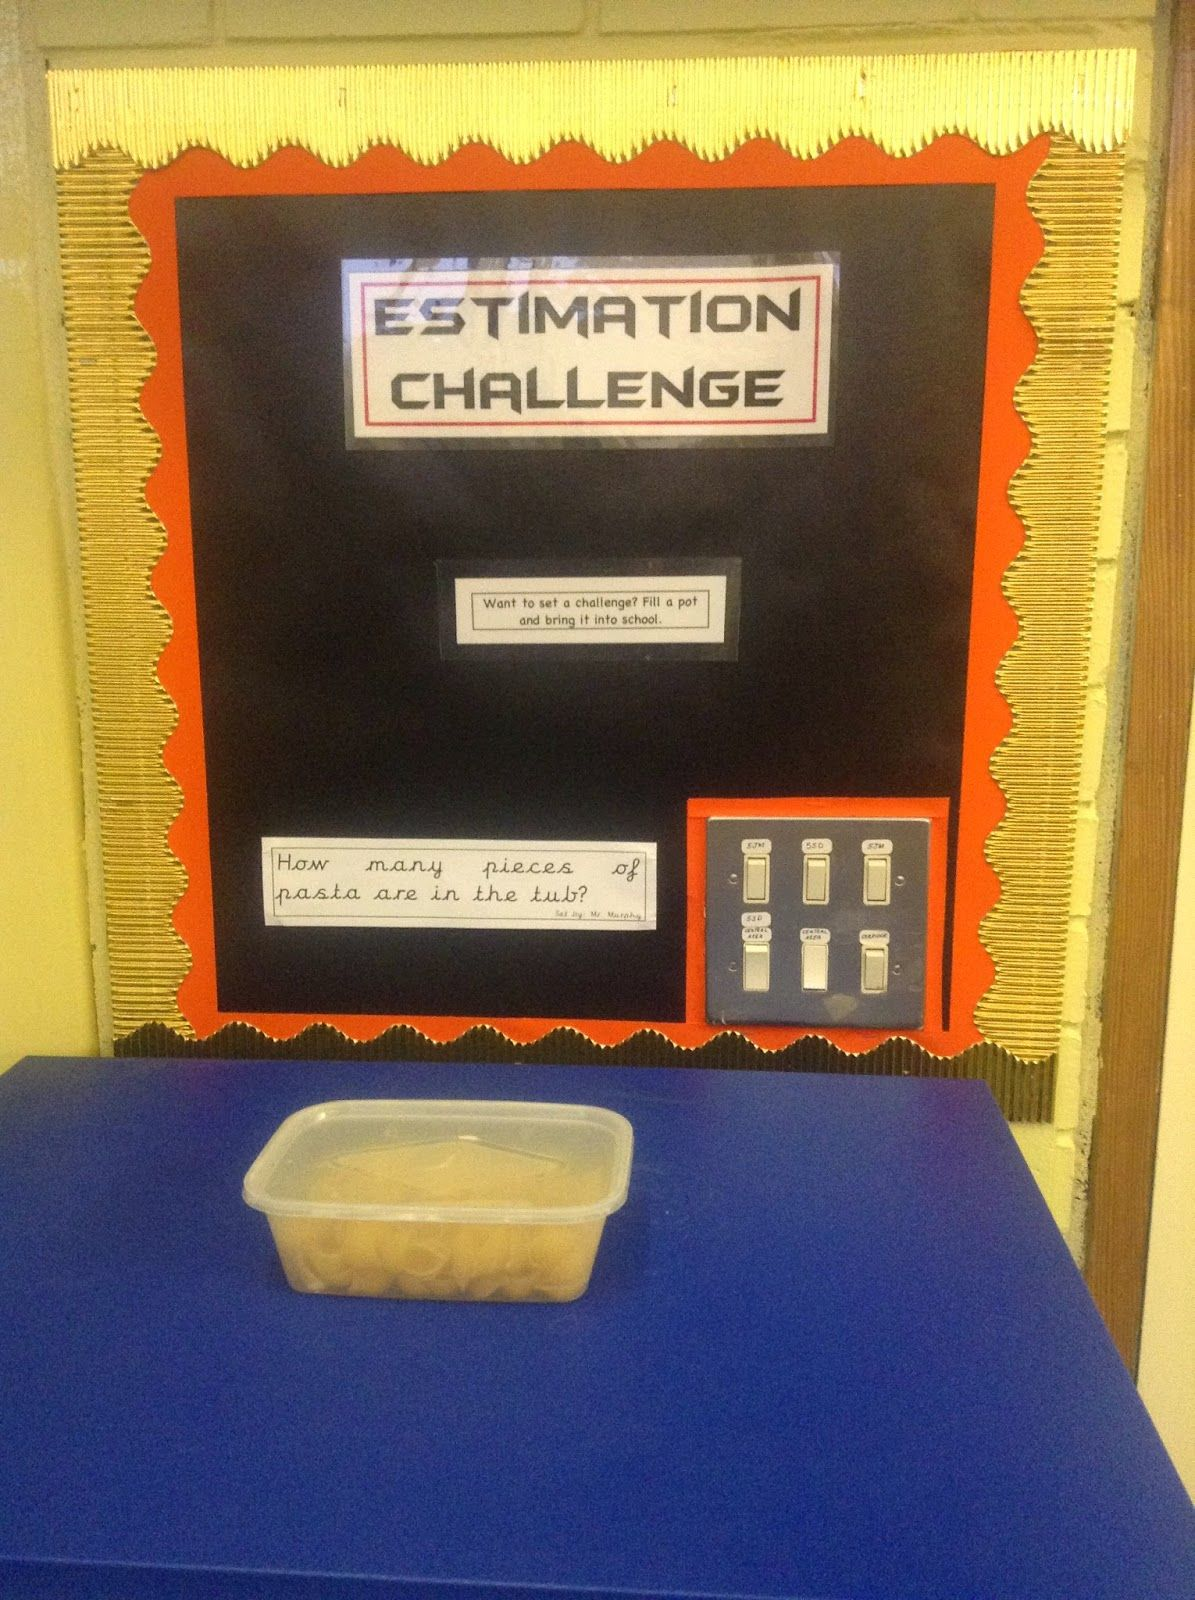 Primary ideas estimation challenge estimation pinterest math